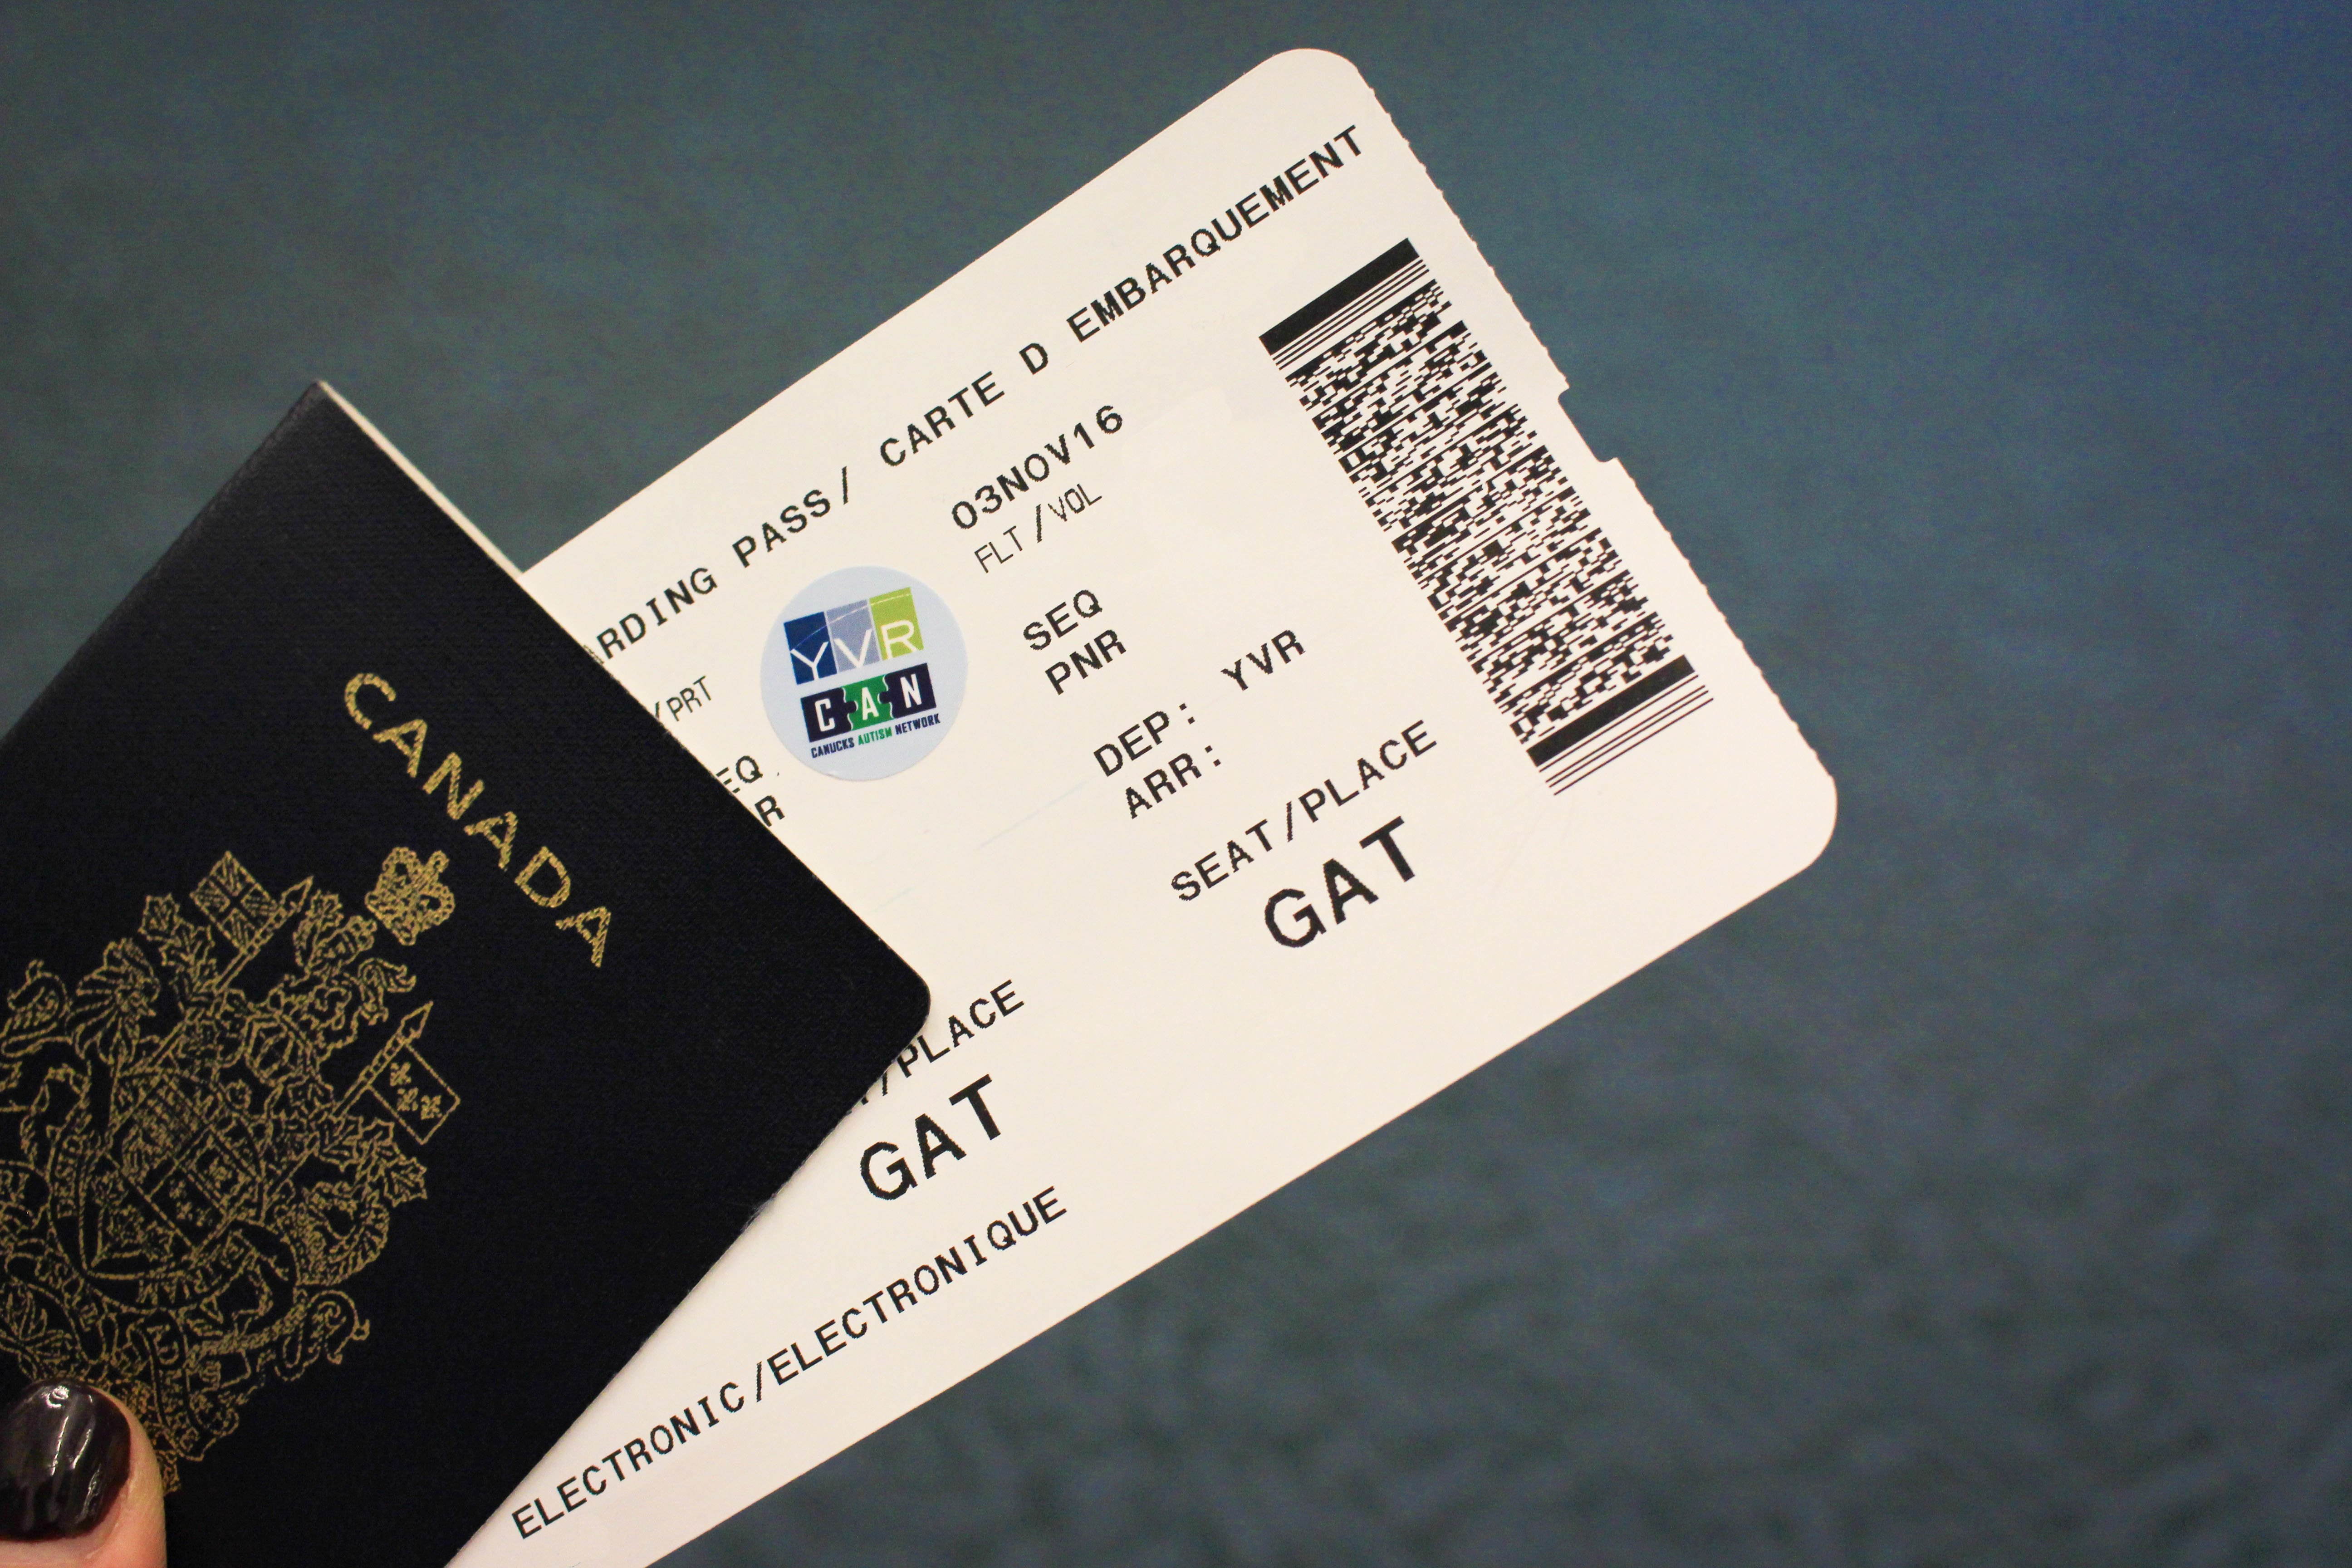 New Yvr Autism Access Sticker Gives Expedited Airport Processing Yvr